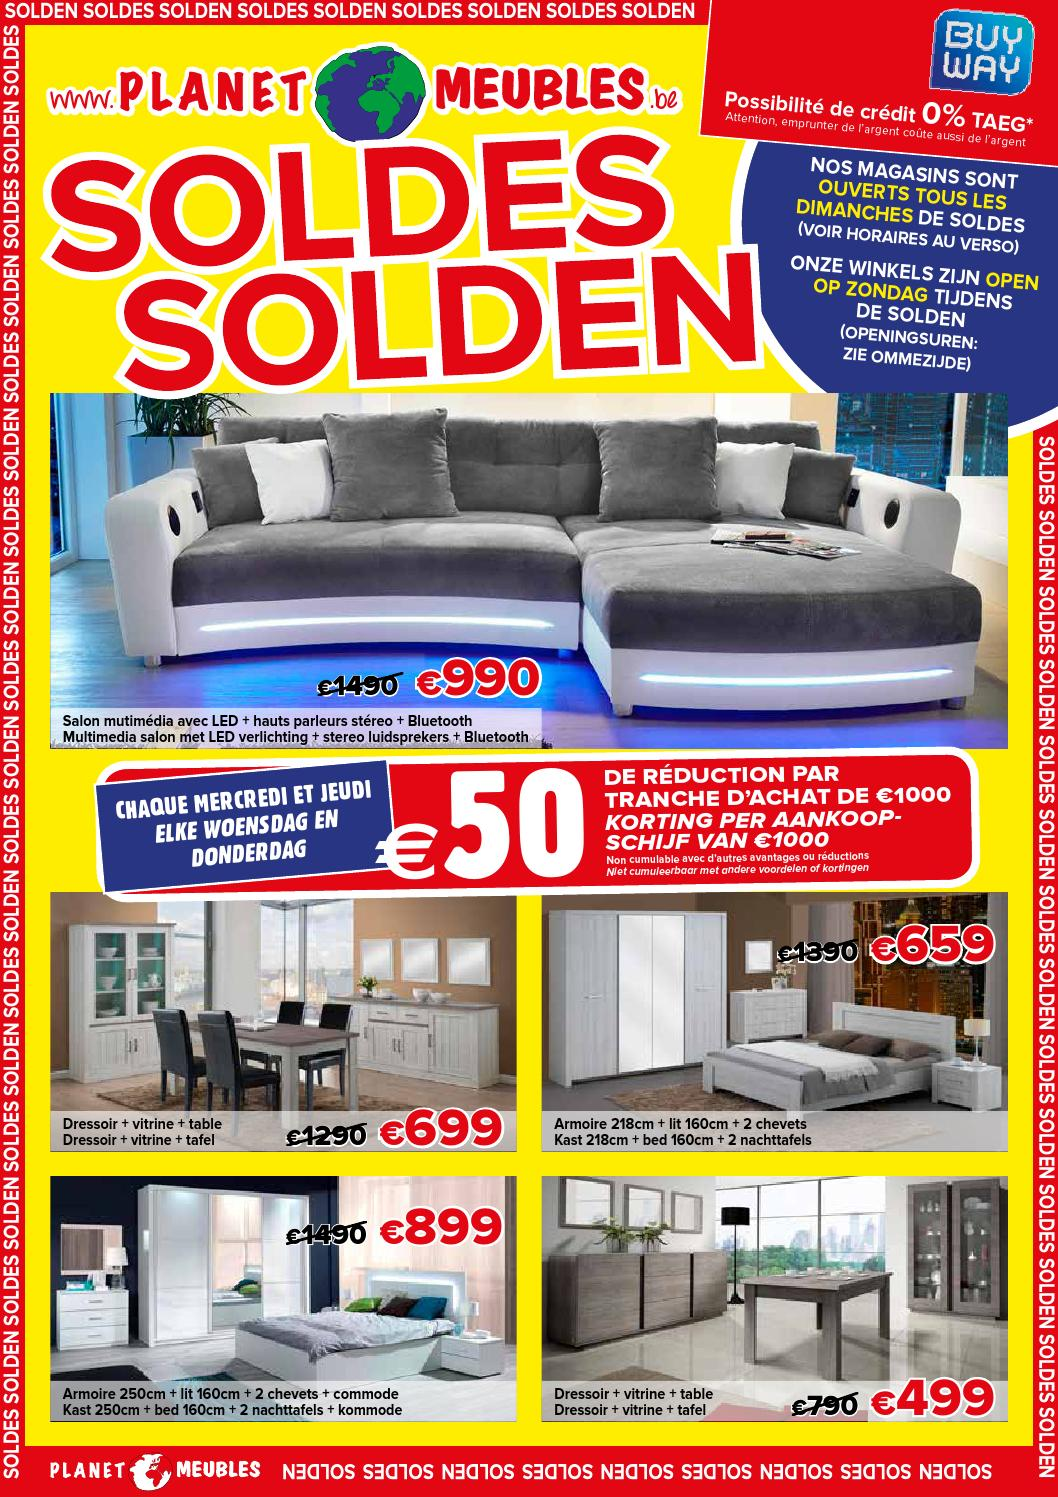 Planet meubles soldes 2016 by vasco interieur issuu for Ameublement soldes